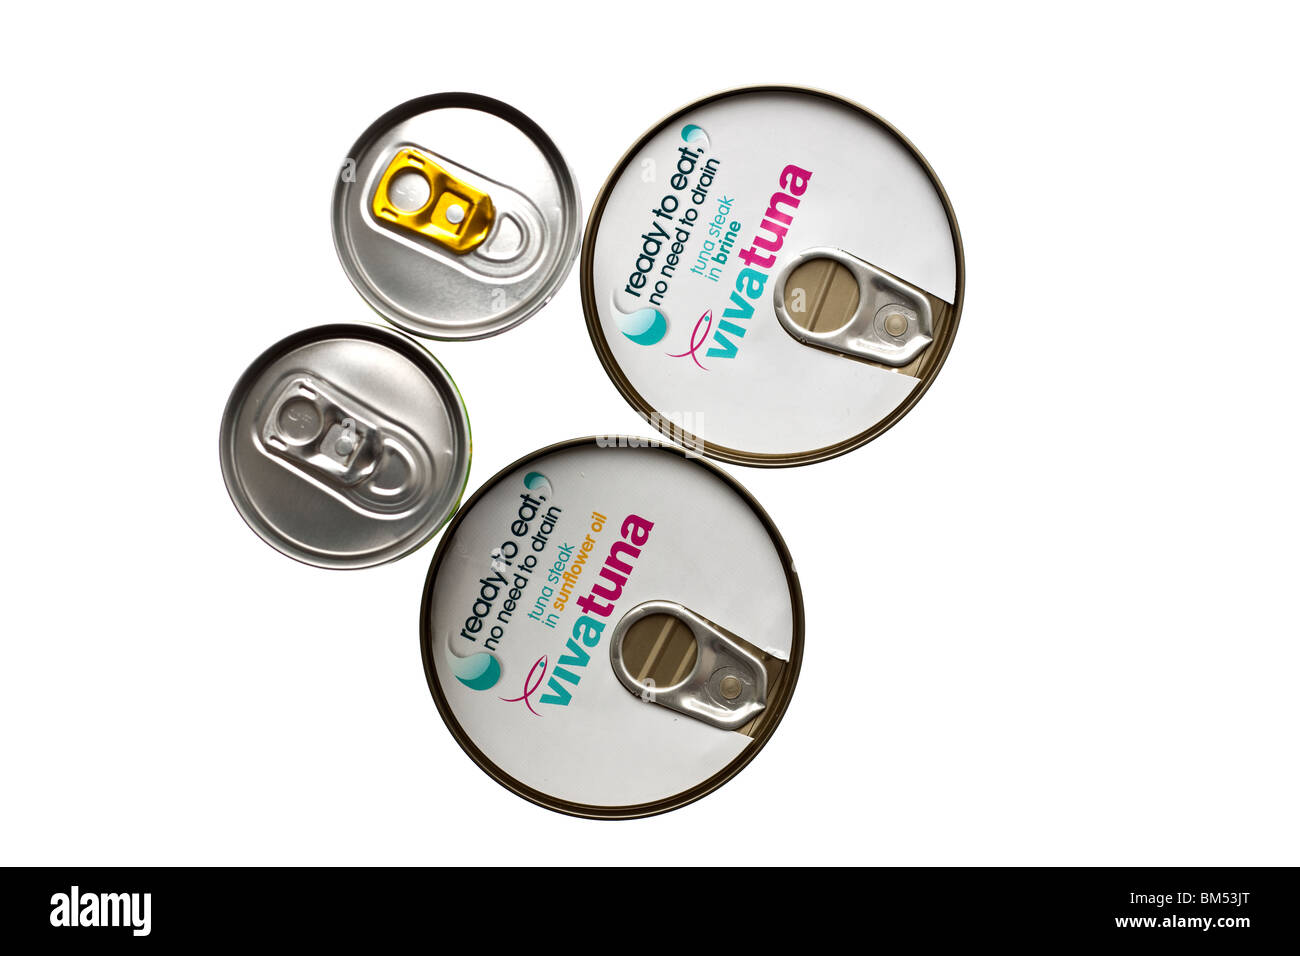 Tins Of Tuna Stock Photos Tins Of Tuna Stock Images Alamy